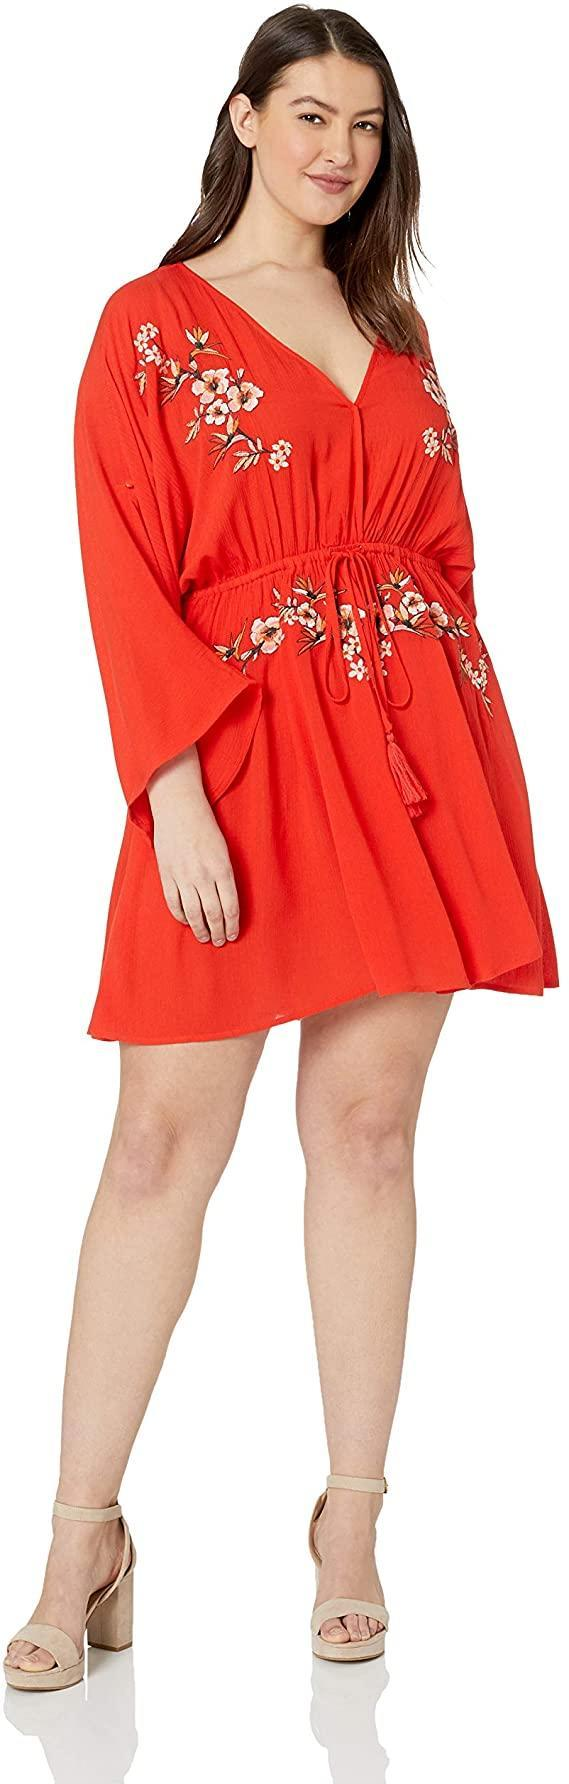 """<br> <br> <strong>City Chic</strong> Embroidered Swing Dress, $, available at <a href=""""https://www.amazon.com/City-Chic-Womens-Apparel-Embroidered/dp/B07HY9NFCB/ref=sr_1_149"""" rel=""""nofollow noopener"""" target=""""_blank"""" data-ylk=""""slk:Amazon"""" class=""""link rapid-noclick-resp"""">Amazon</a>"""